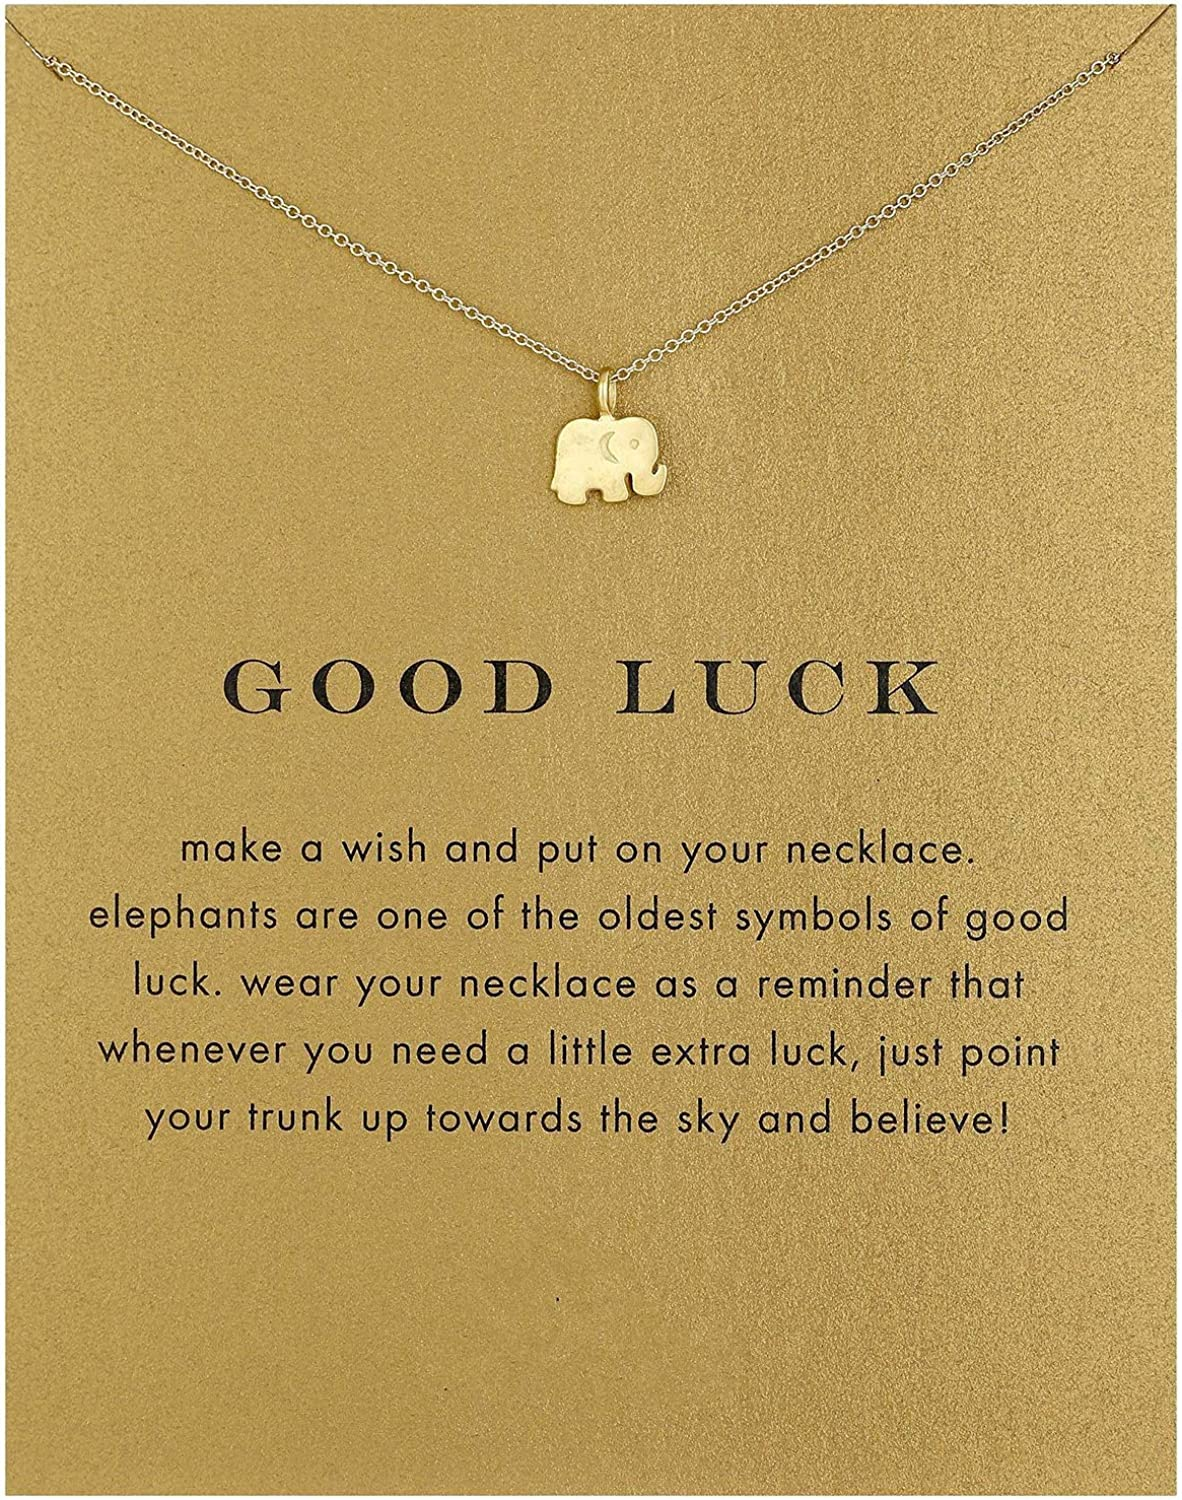 Dainty Lucky Elephant Horseshoe Clavicle Chain Key Angel Wing Hexagram Star Pendant Necklace Friendship BFF Jewelry